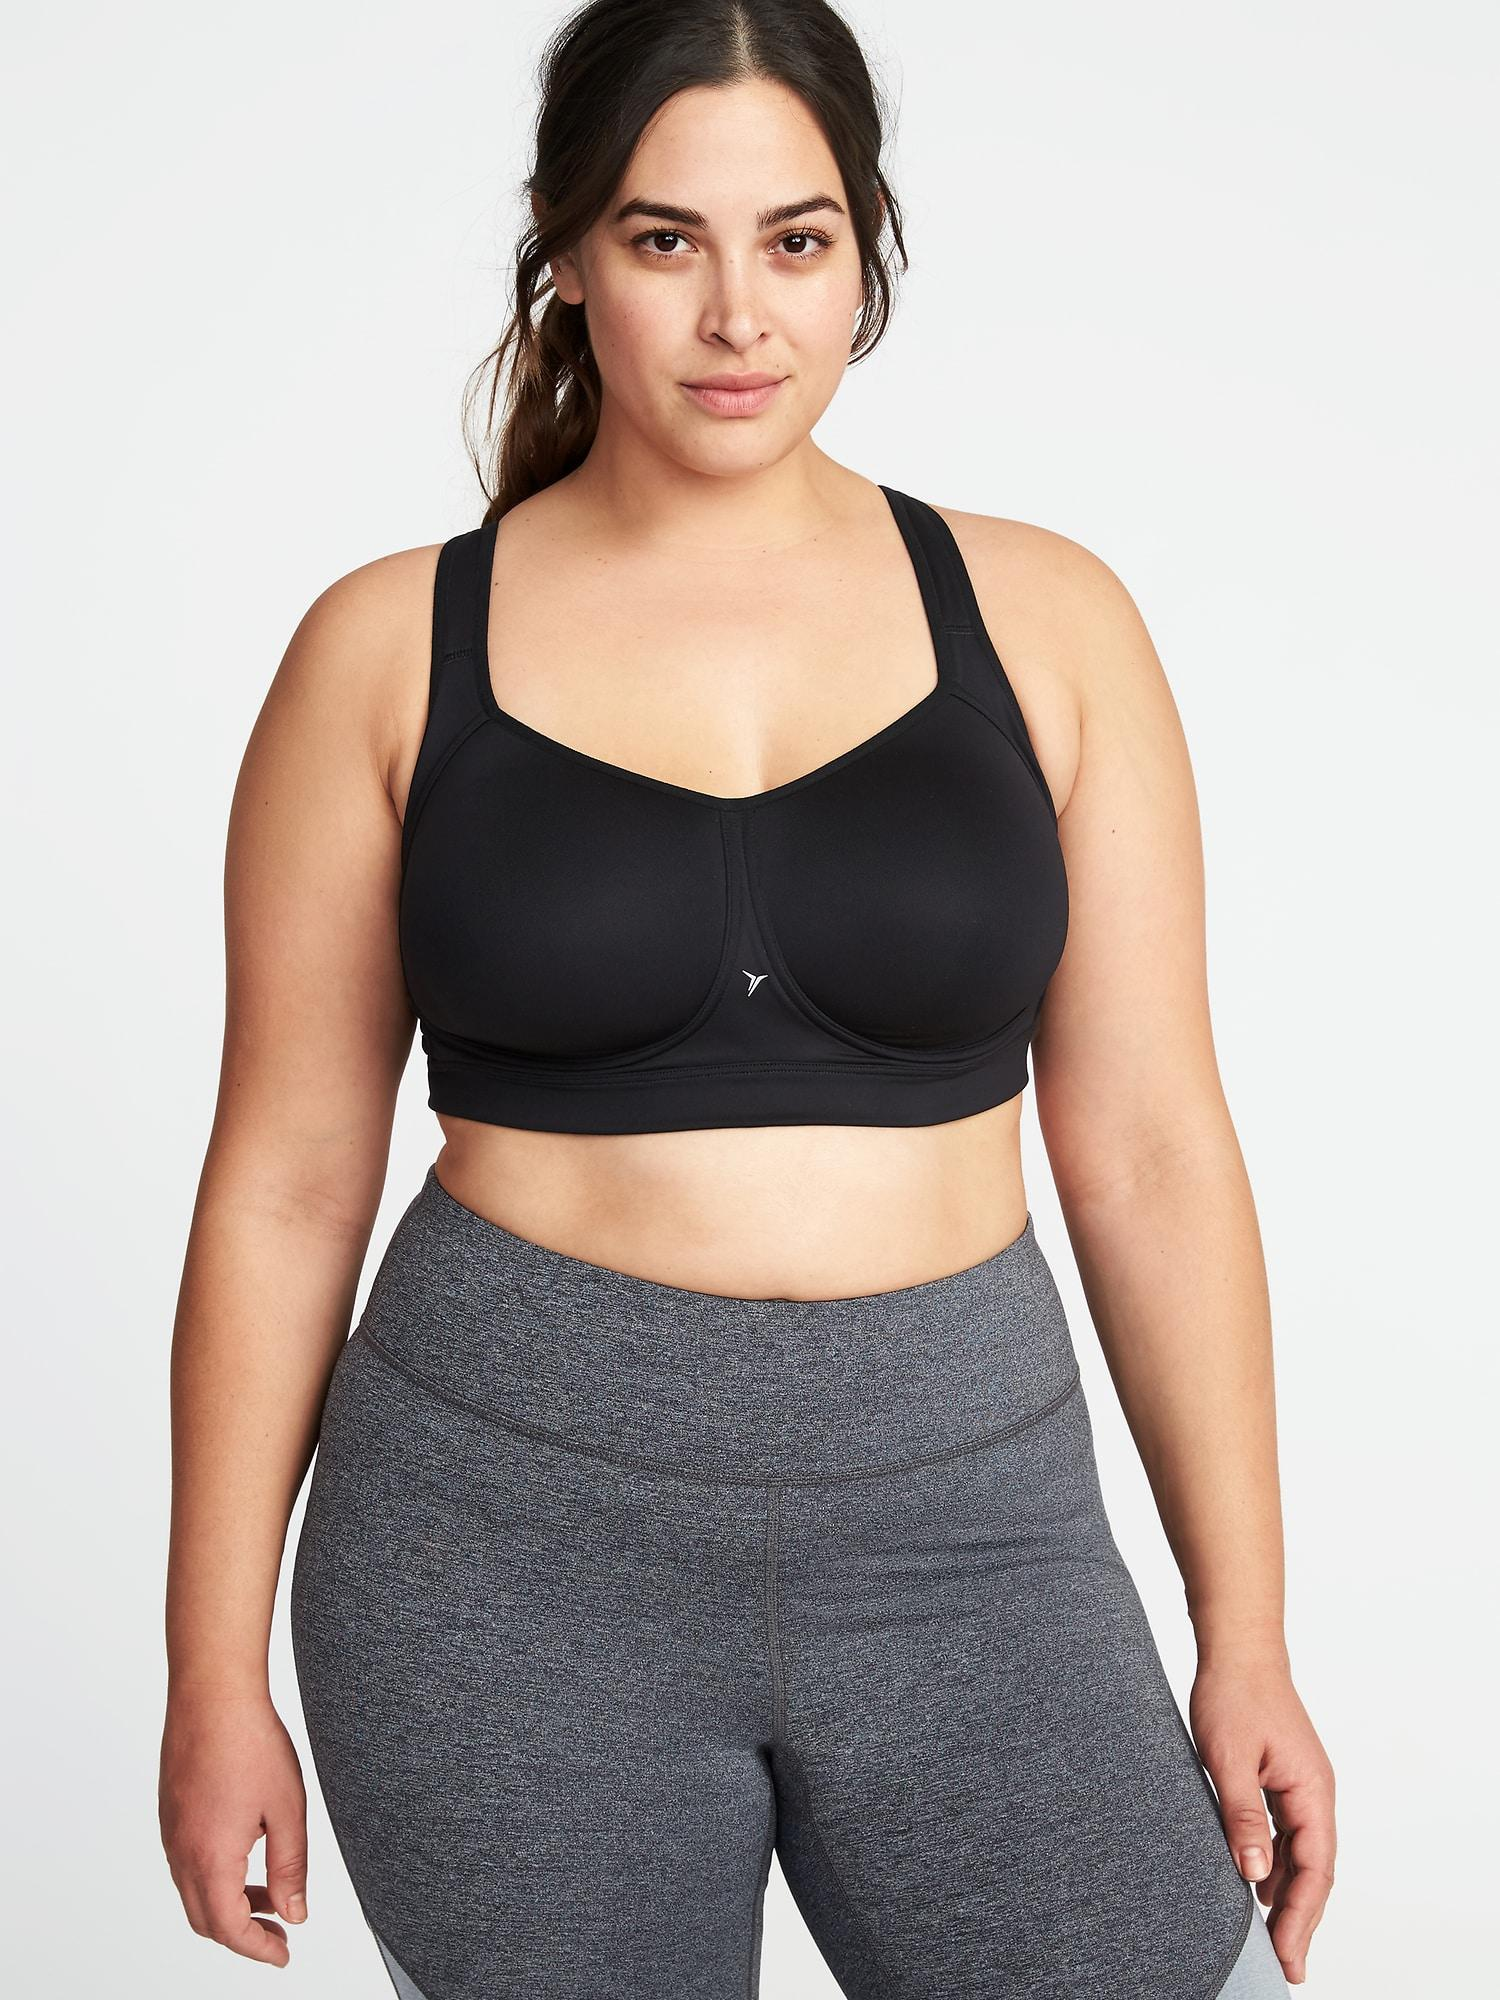 5d5abf843e7 Lyst - Old Navy High-support Plus-size Mesh-racerback Sports Bra in ...